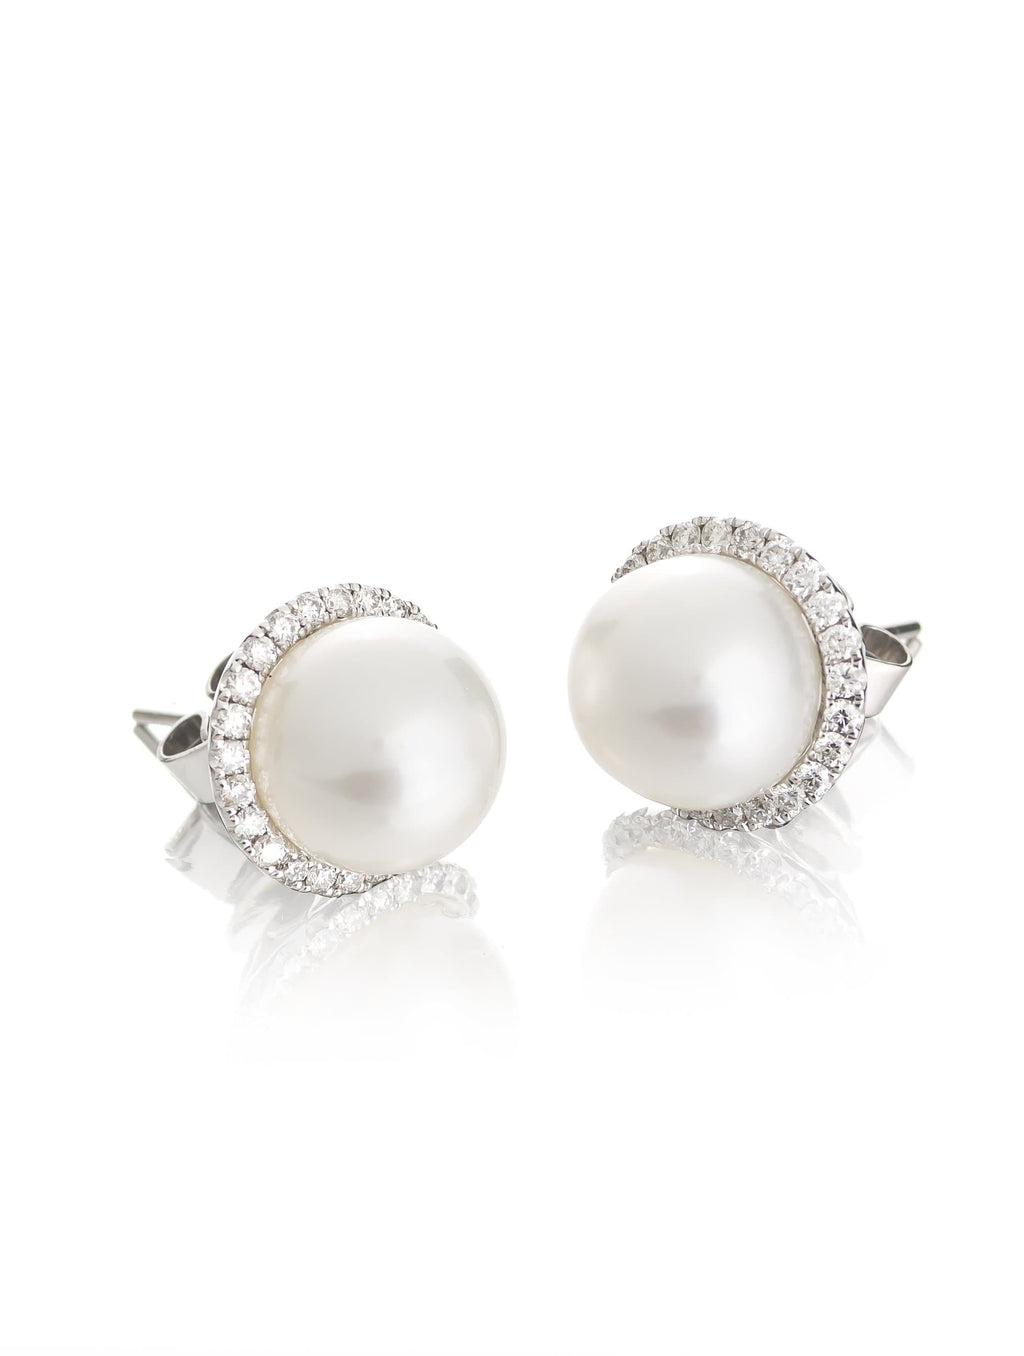 Pearl & Diamond Halo Stud Earrings